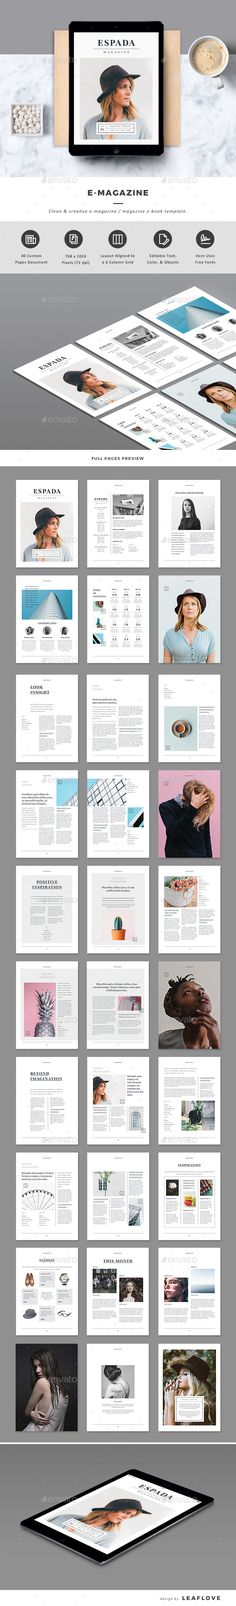 EMagazine — InDesign INDD #lifestyle #mag • Download ➝ https://graphicriver.net/item/emagazine/19588975?ref=pxcr